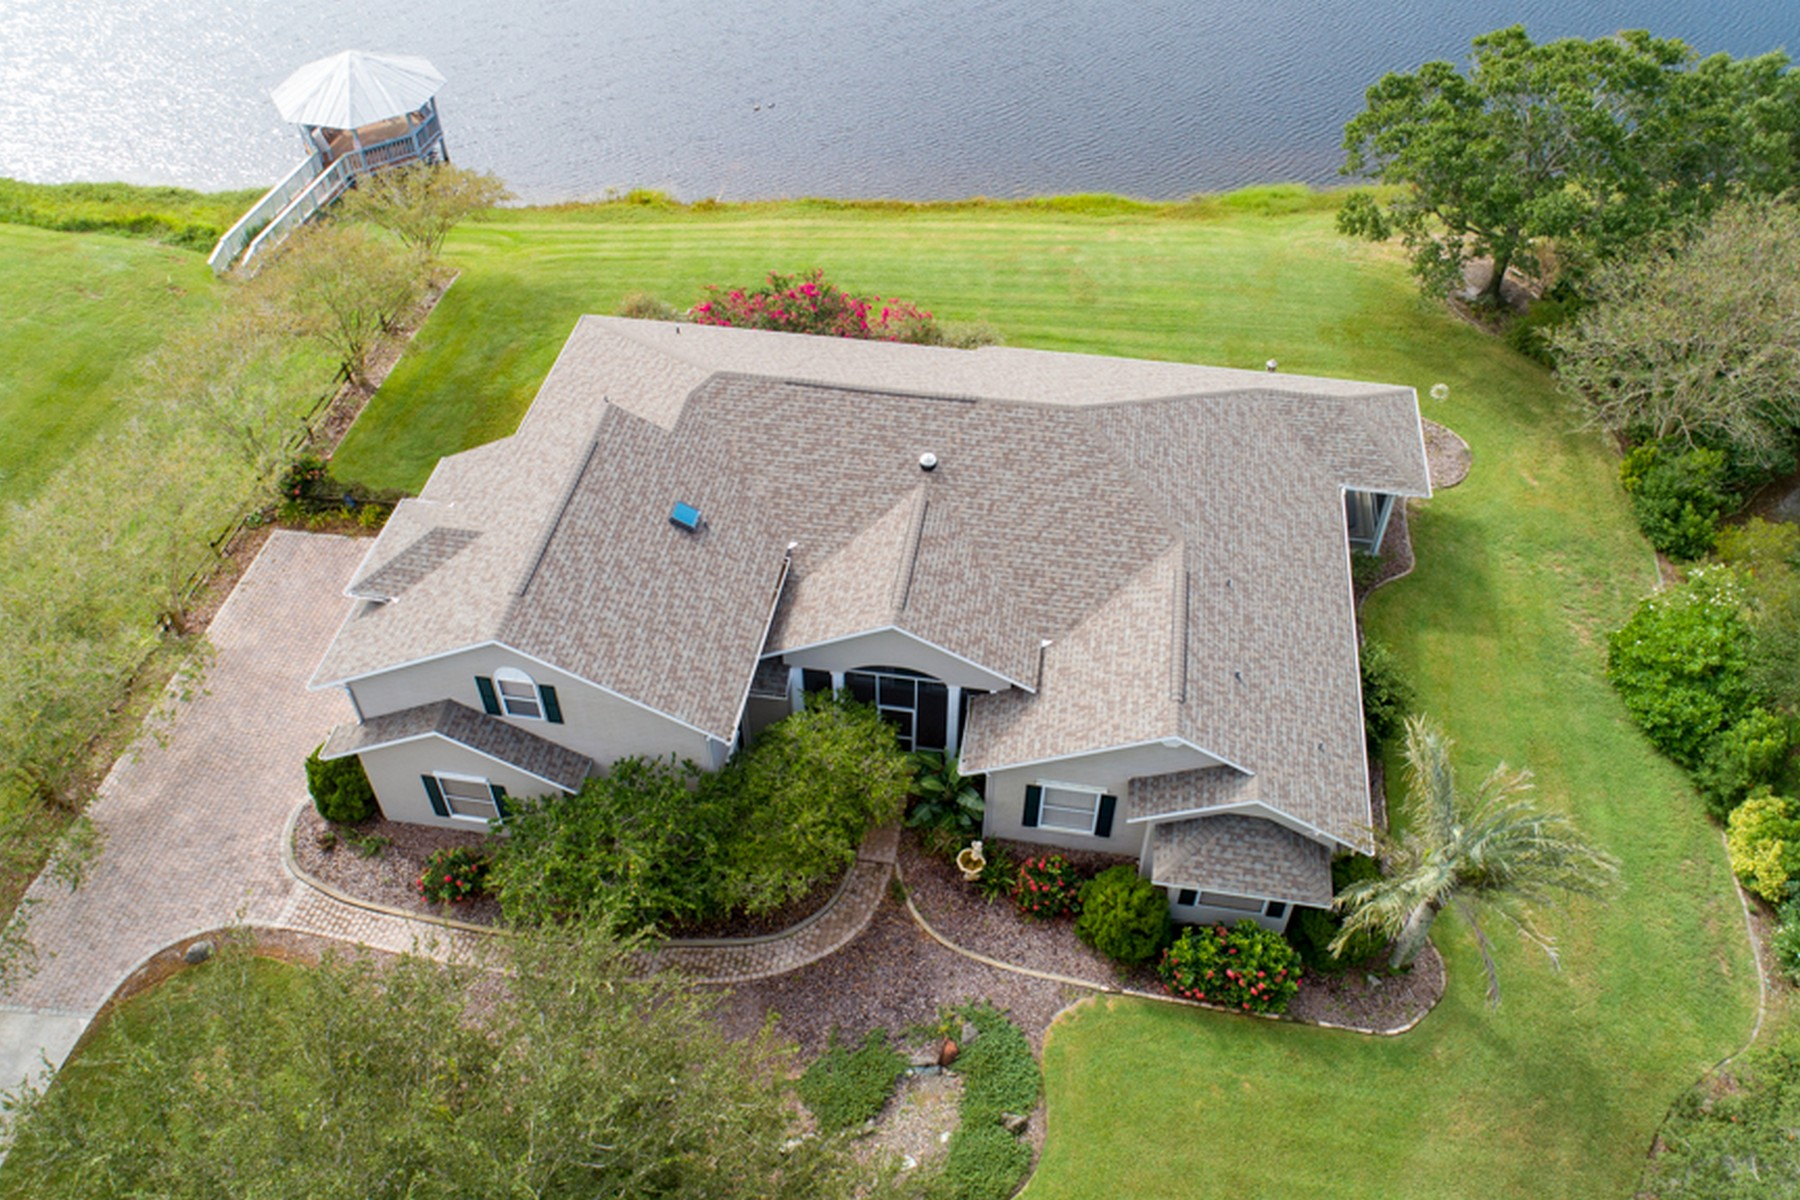 Property for Sale at Beautiful Custom Home With Fantastic Lake Views 730 N Fischer Circle Sebastian, Florida 32958 United States